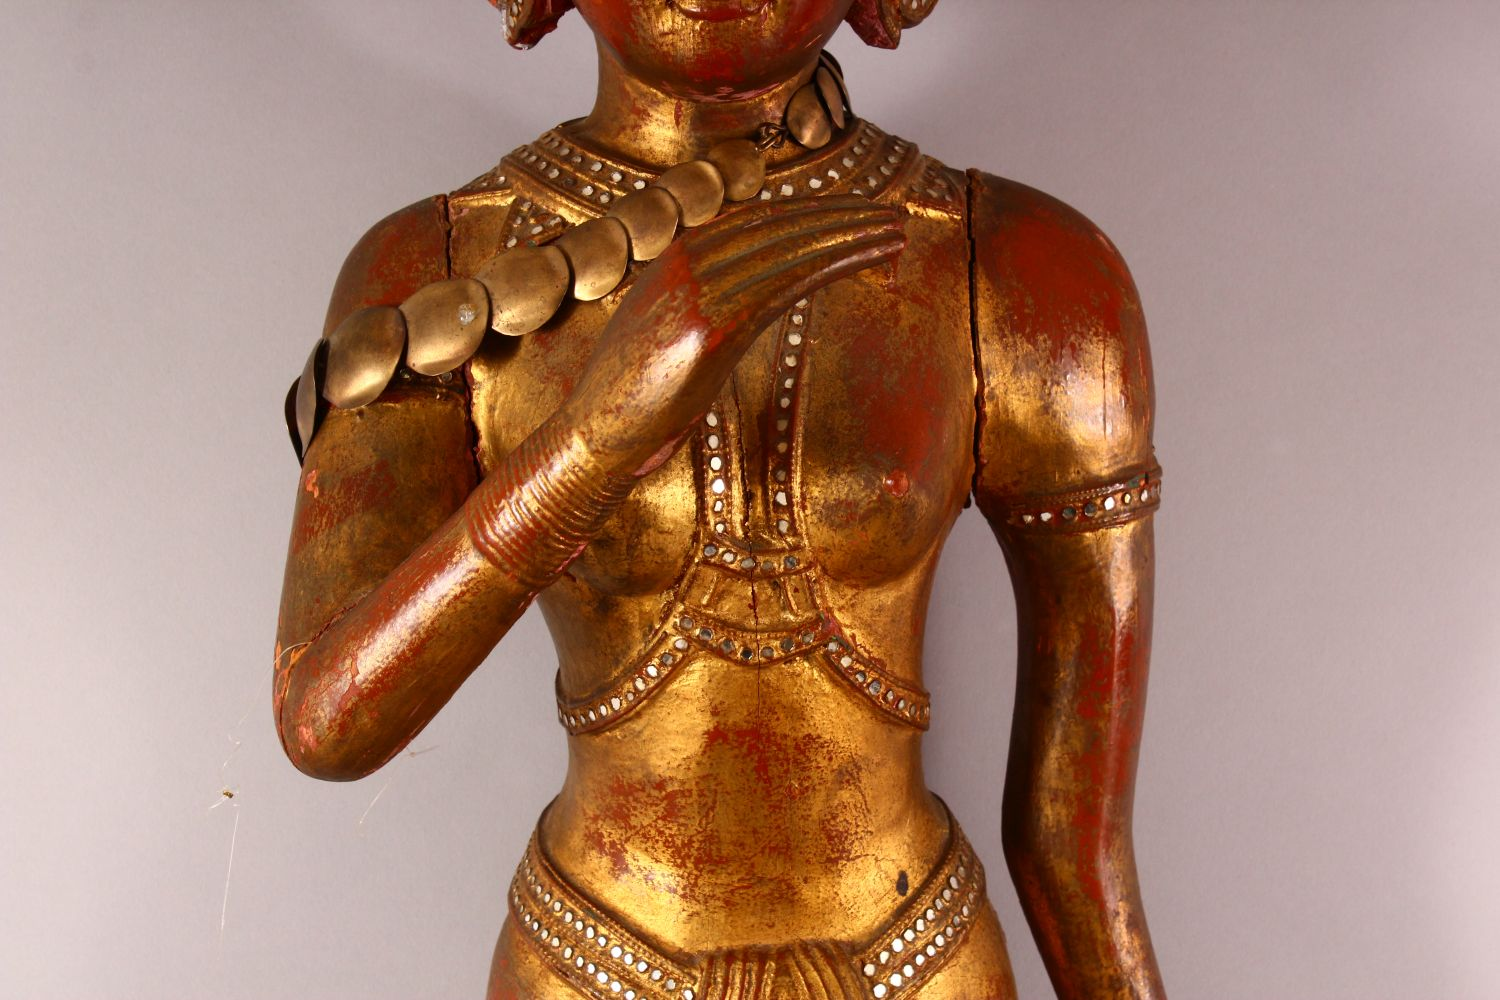 A LARGE THAI GILT AND RED LACQUER CARVED WOOD FIGURE, standing on a lotus base, 104cm high. - Image 3 of 8